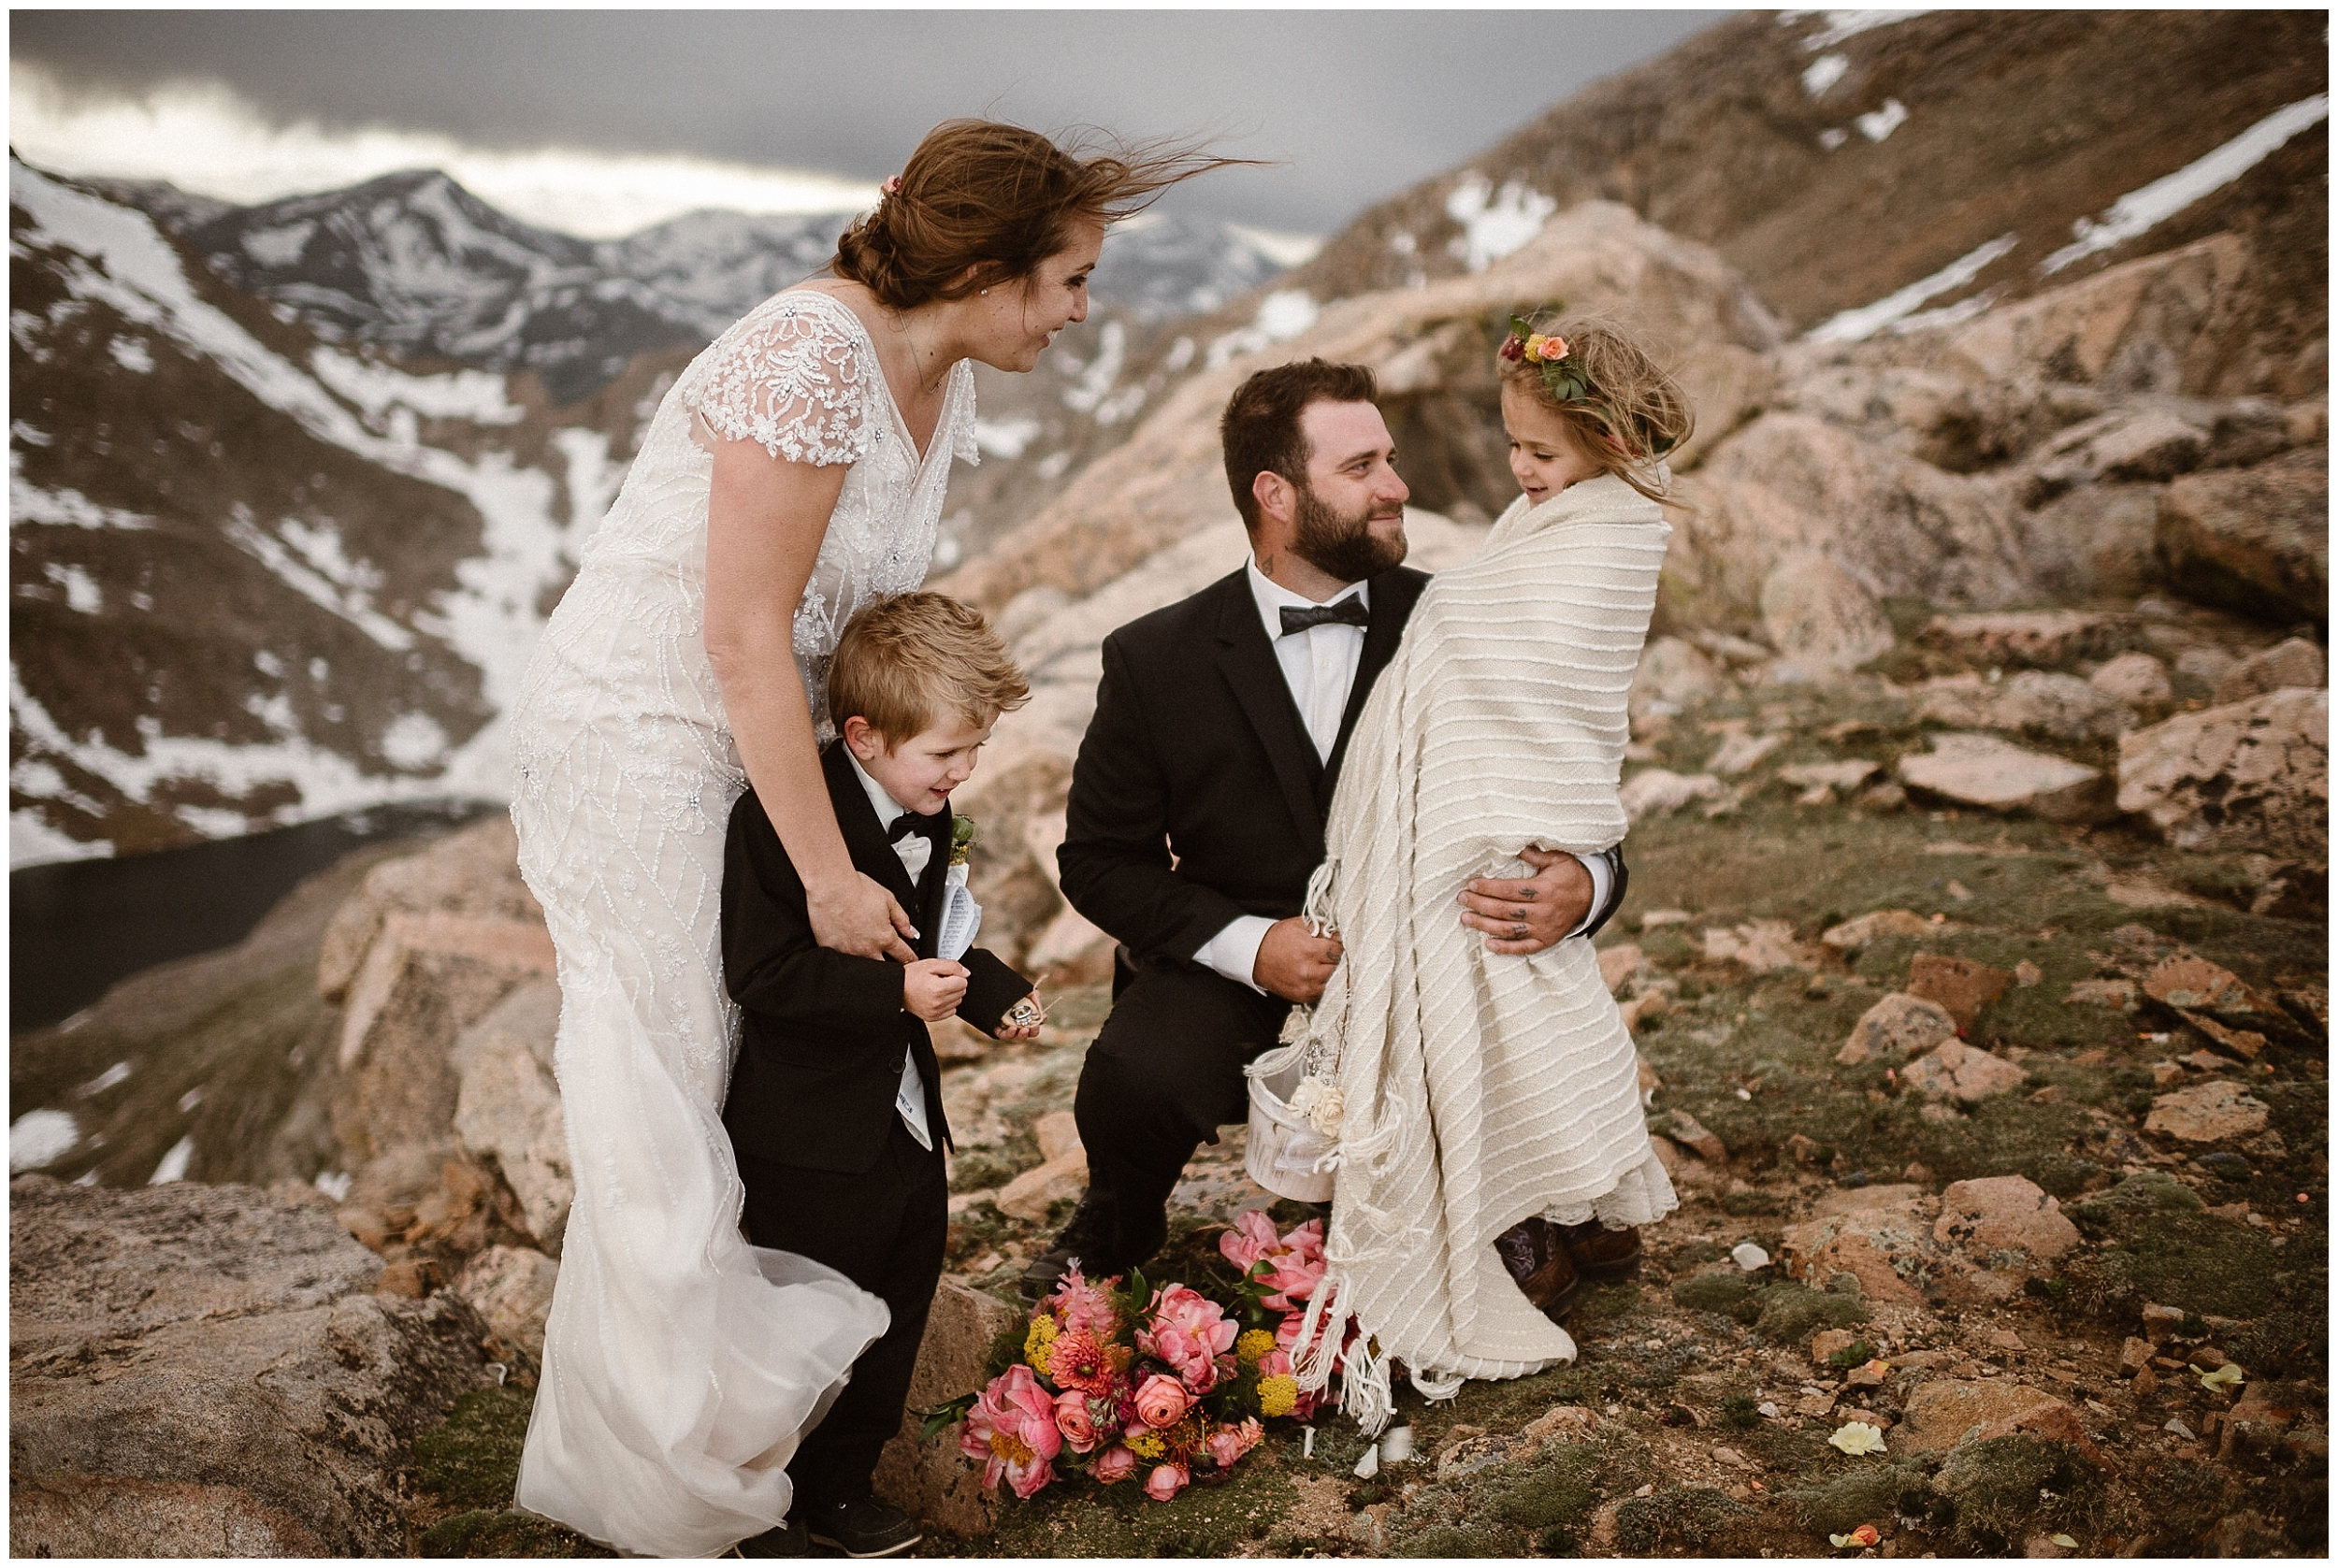 A bride, a groom, and their two children stand at the top of a mountain, huddled together in this elopement picture captured by elopement wedding photographer Adventure Instead. Behind them, mountain peaks covered in snow can be seen.